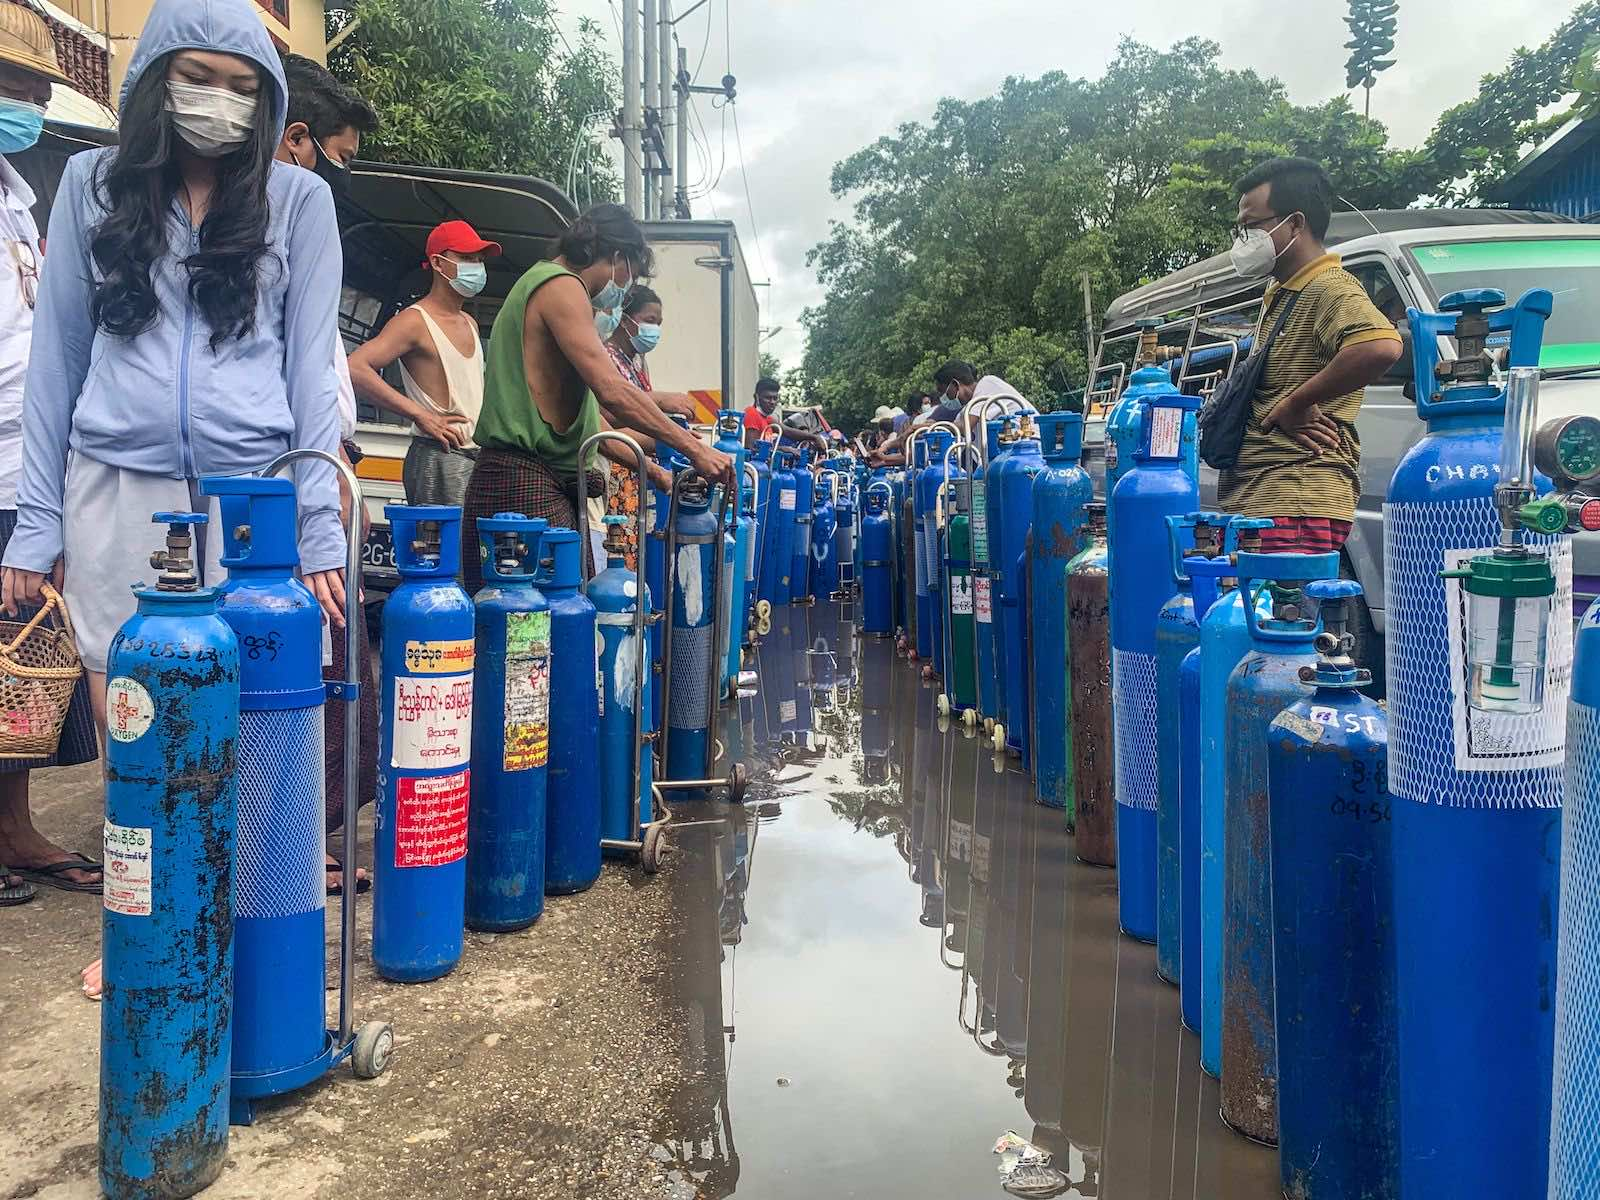 People stand with empty oxygen canisters as they wait to fill them up outside a factory in Yangon on 11 July (Ye Aung Thu/AFP via Getty Images)